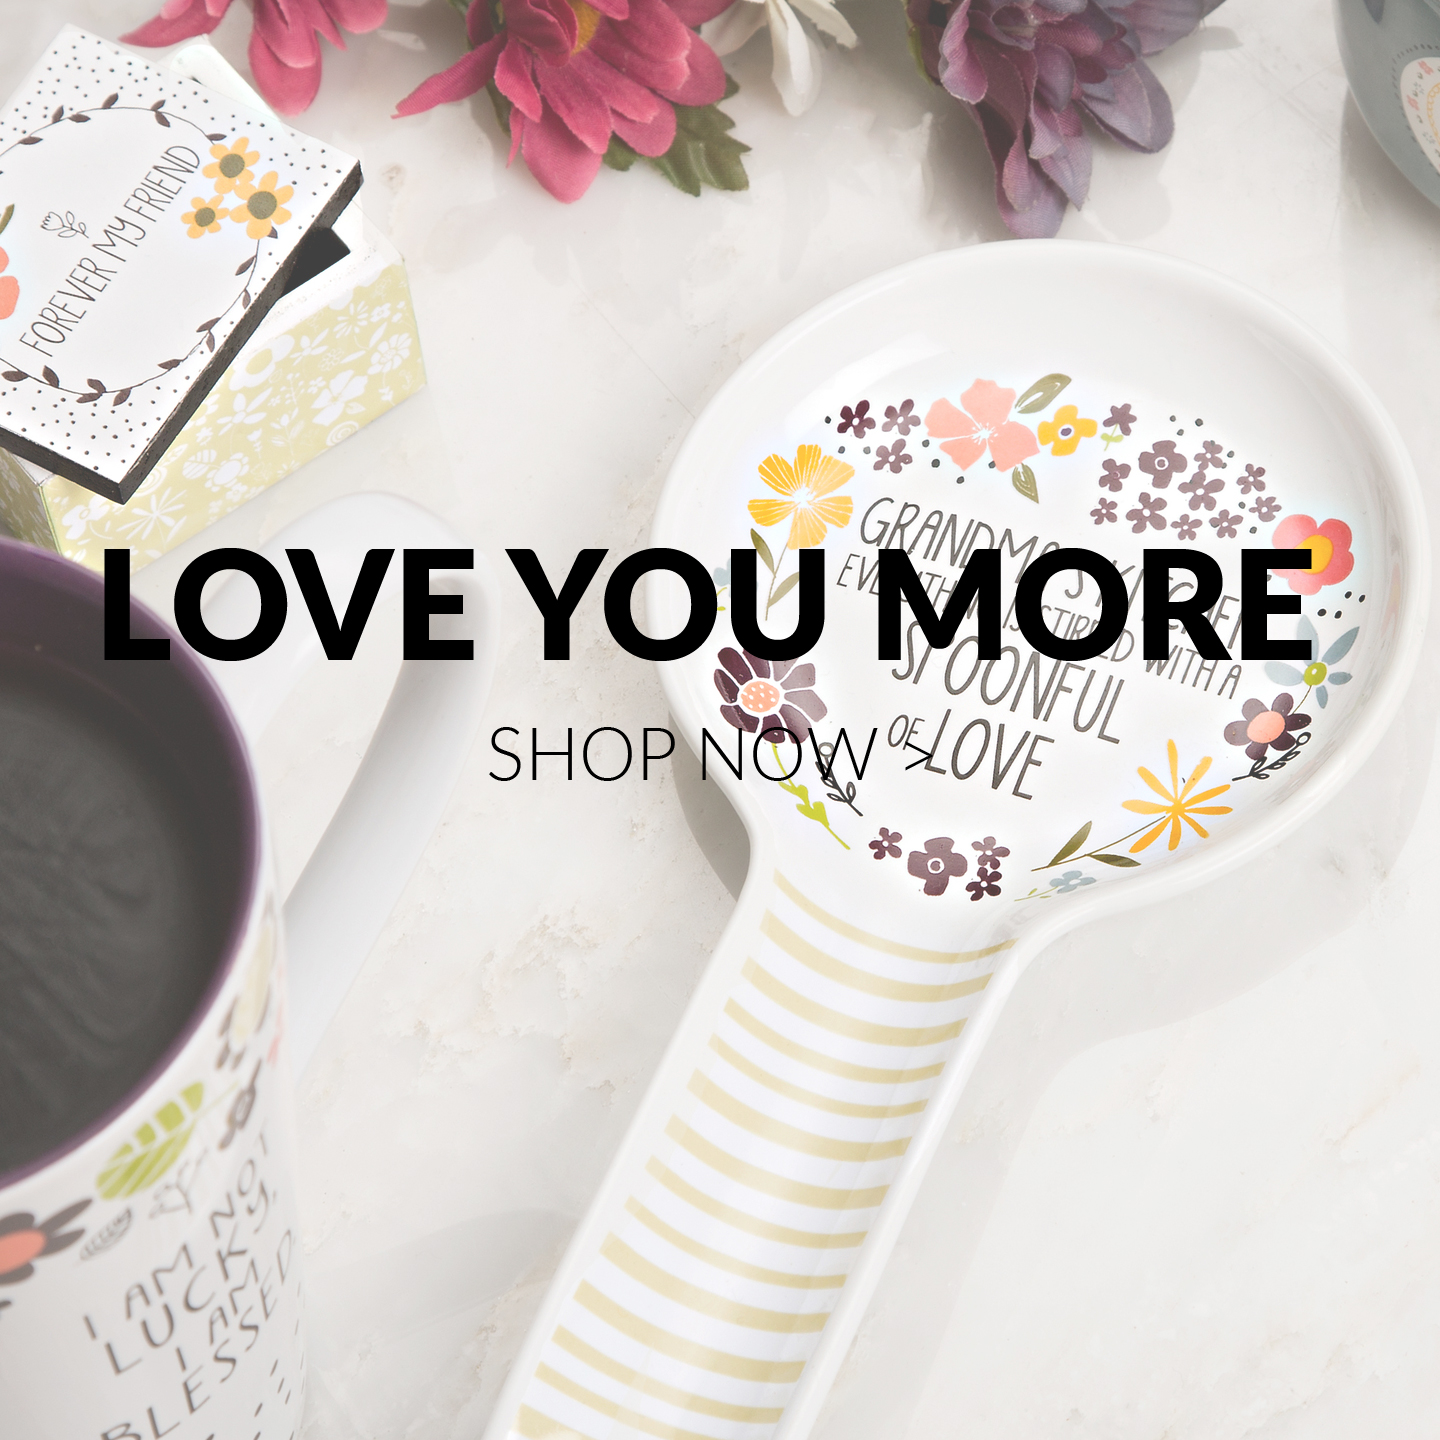 Love You More by Amylee Weeks